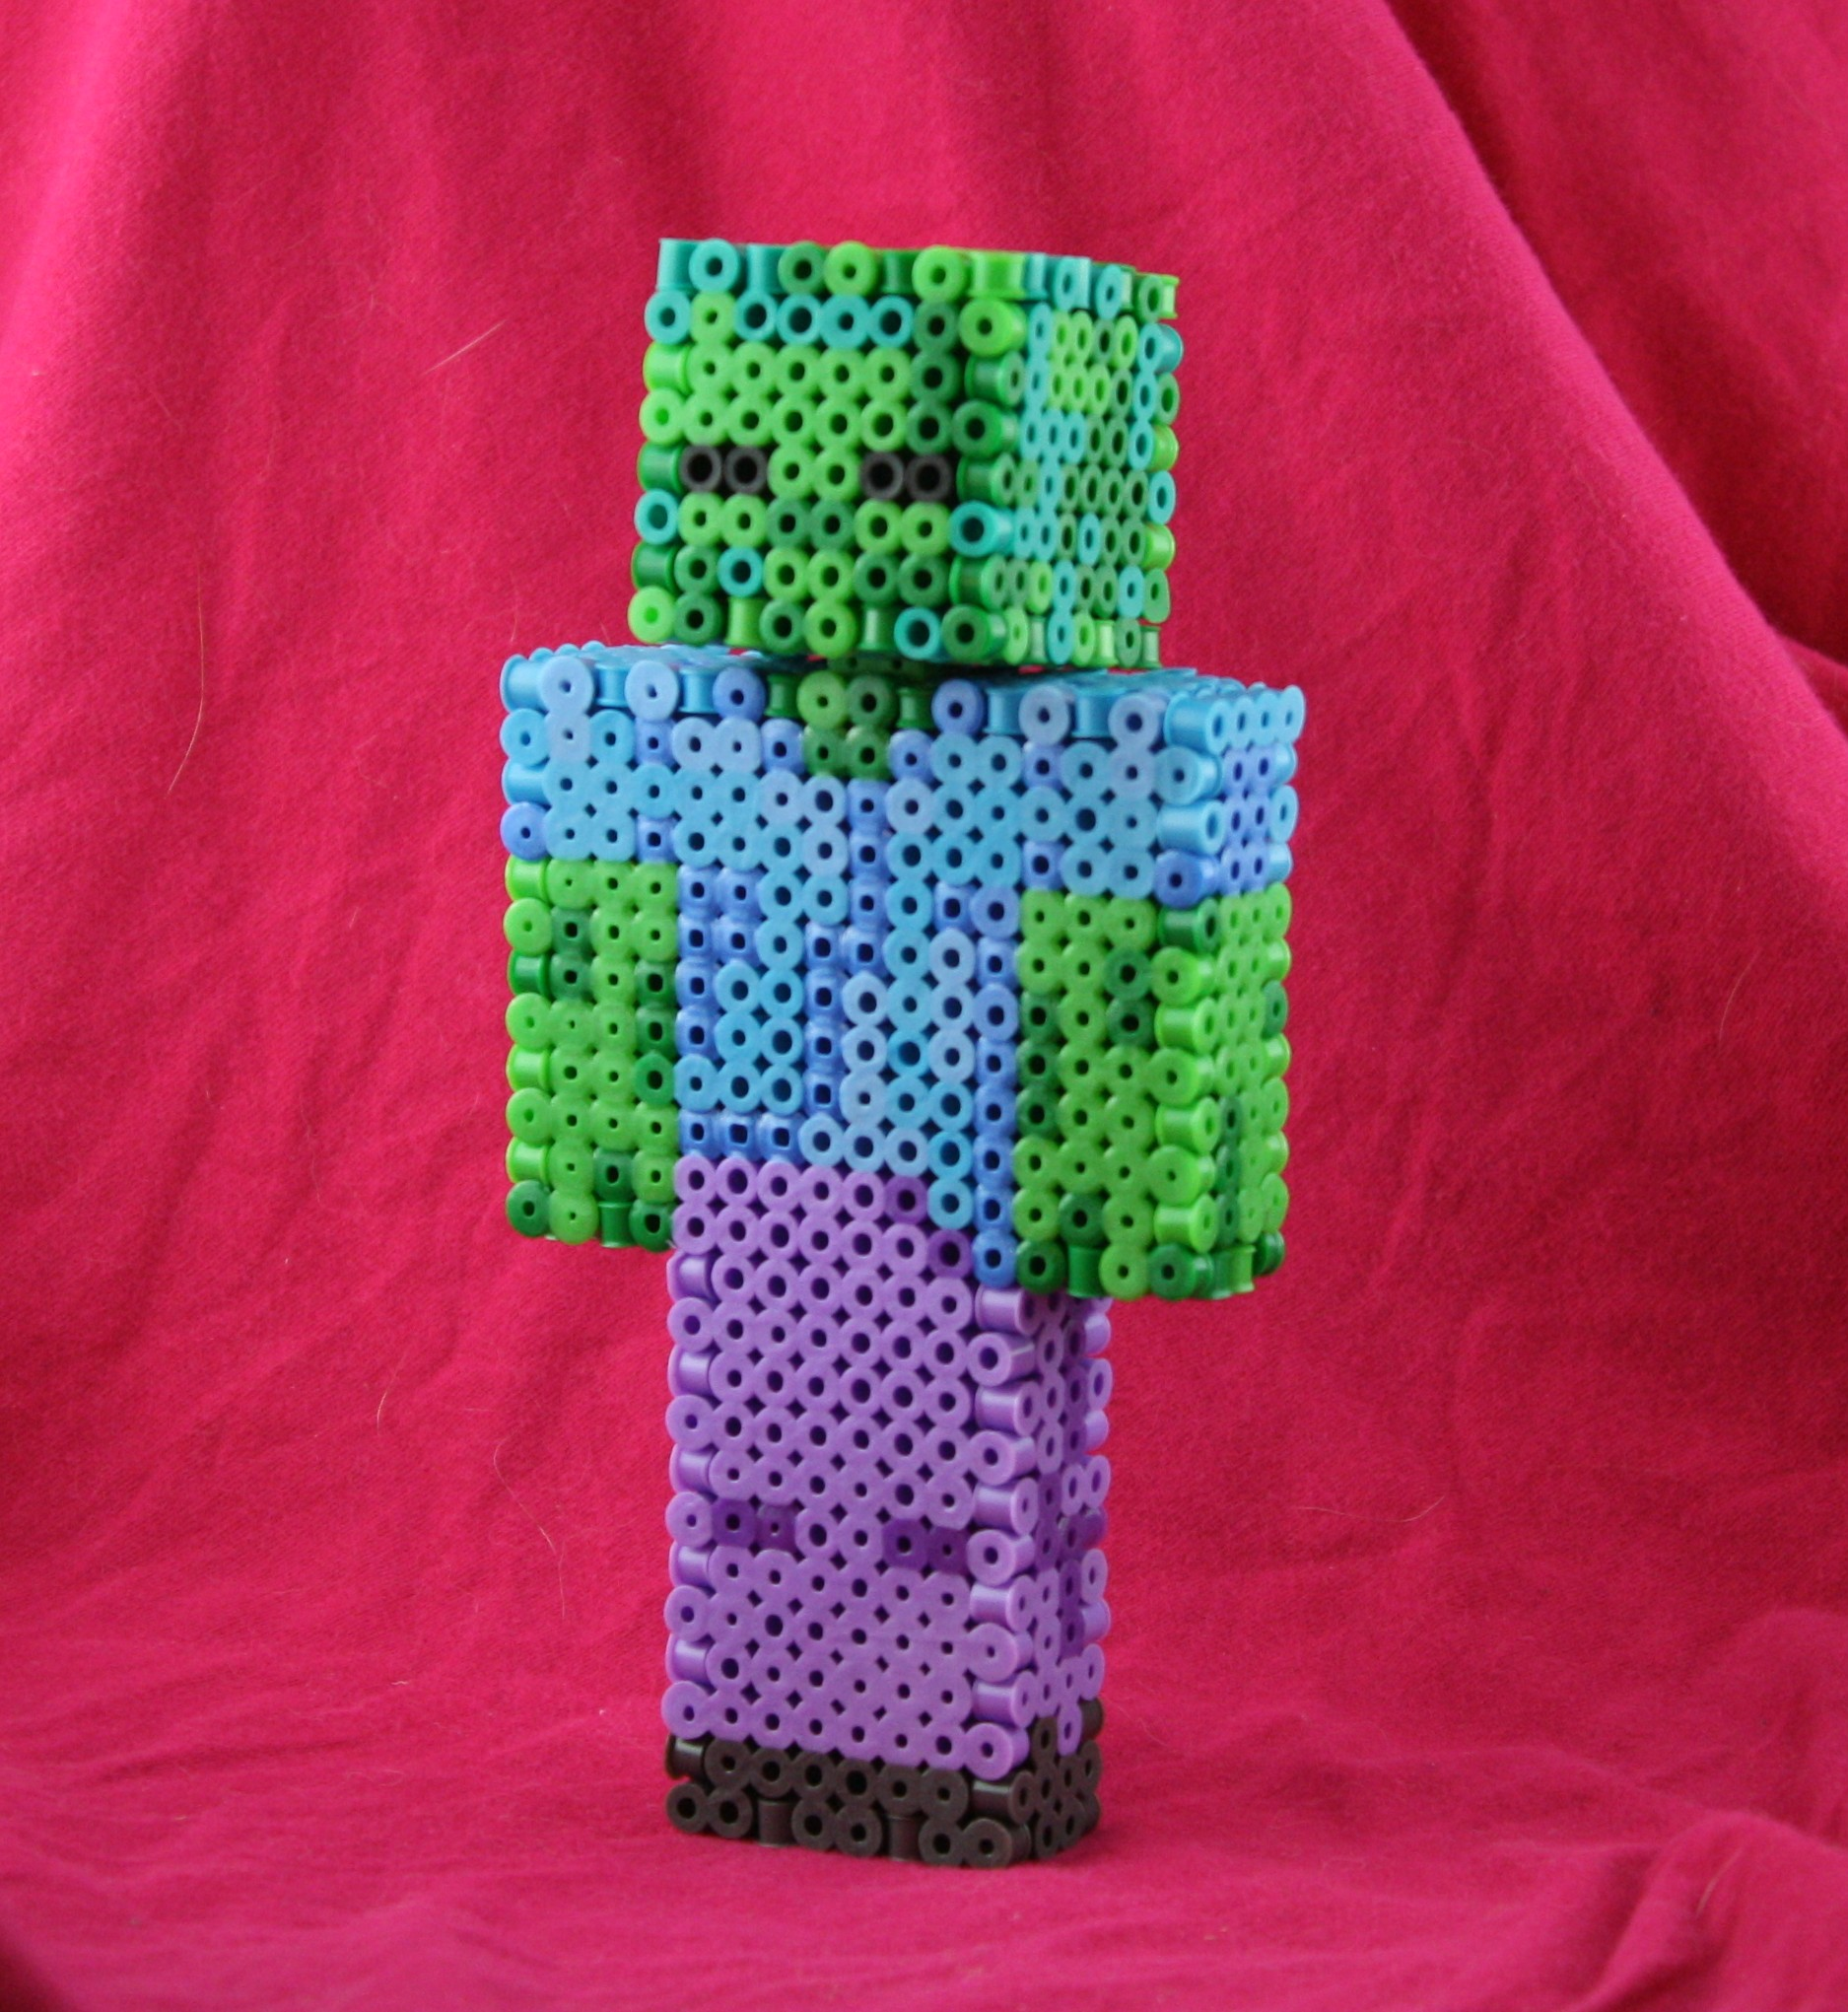 Mincraft Inspired Perler Projects Dr Ashley Godbolds Blog